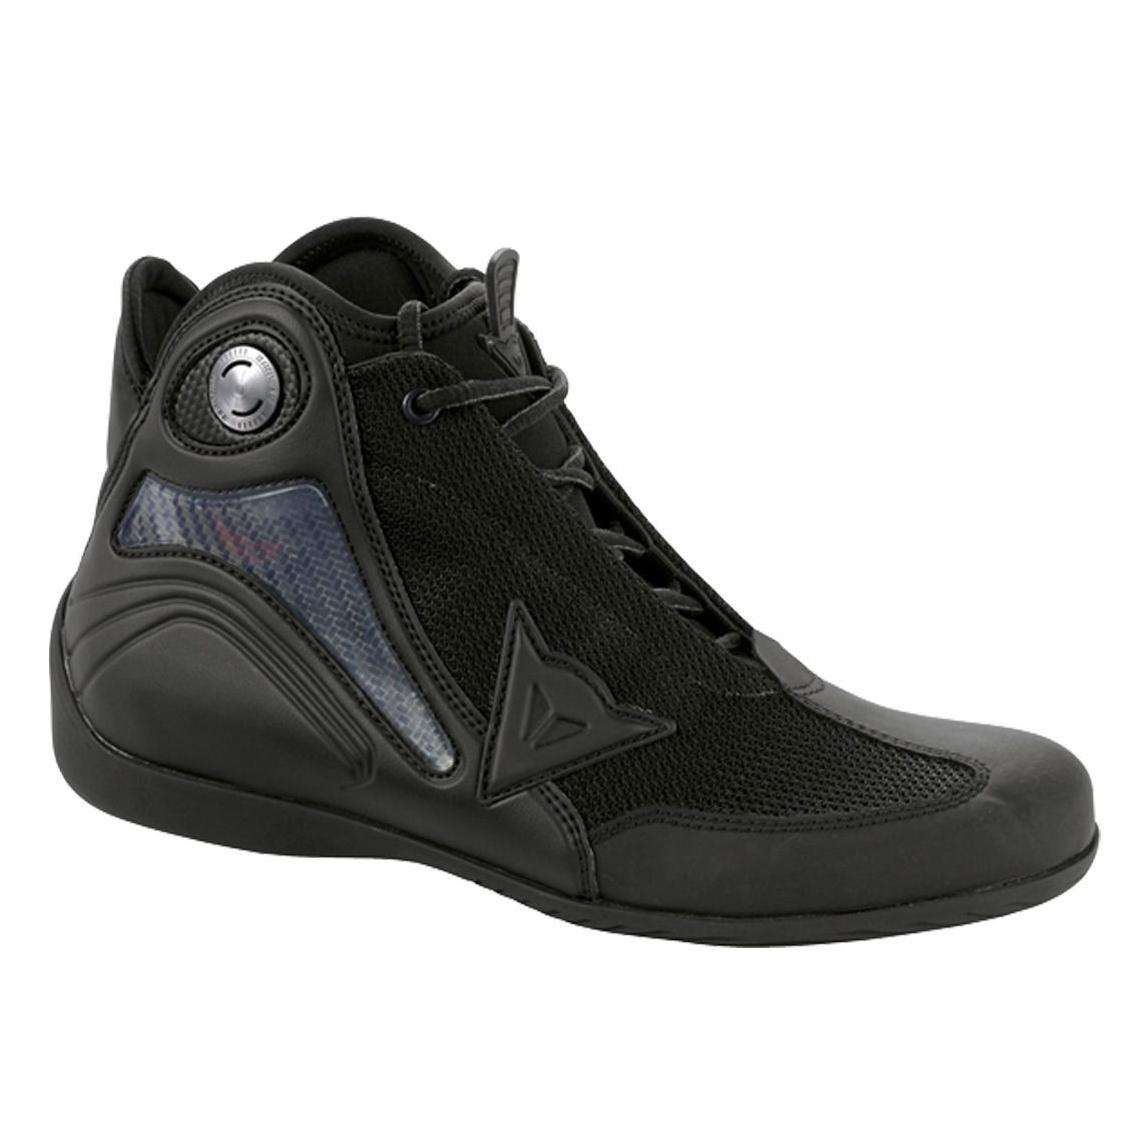 Get it delivered to your door - DAINESE Scarpa Short Shift Shoes - 2910 (EGP)